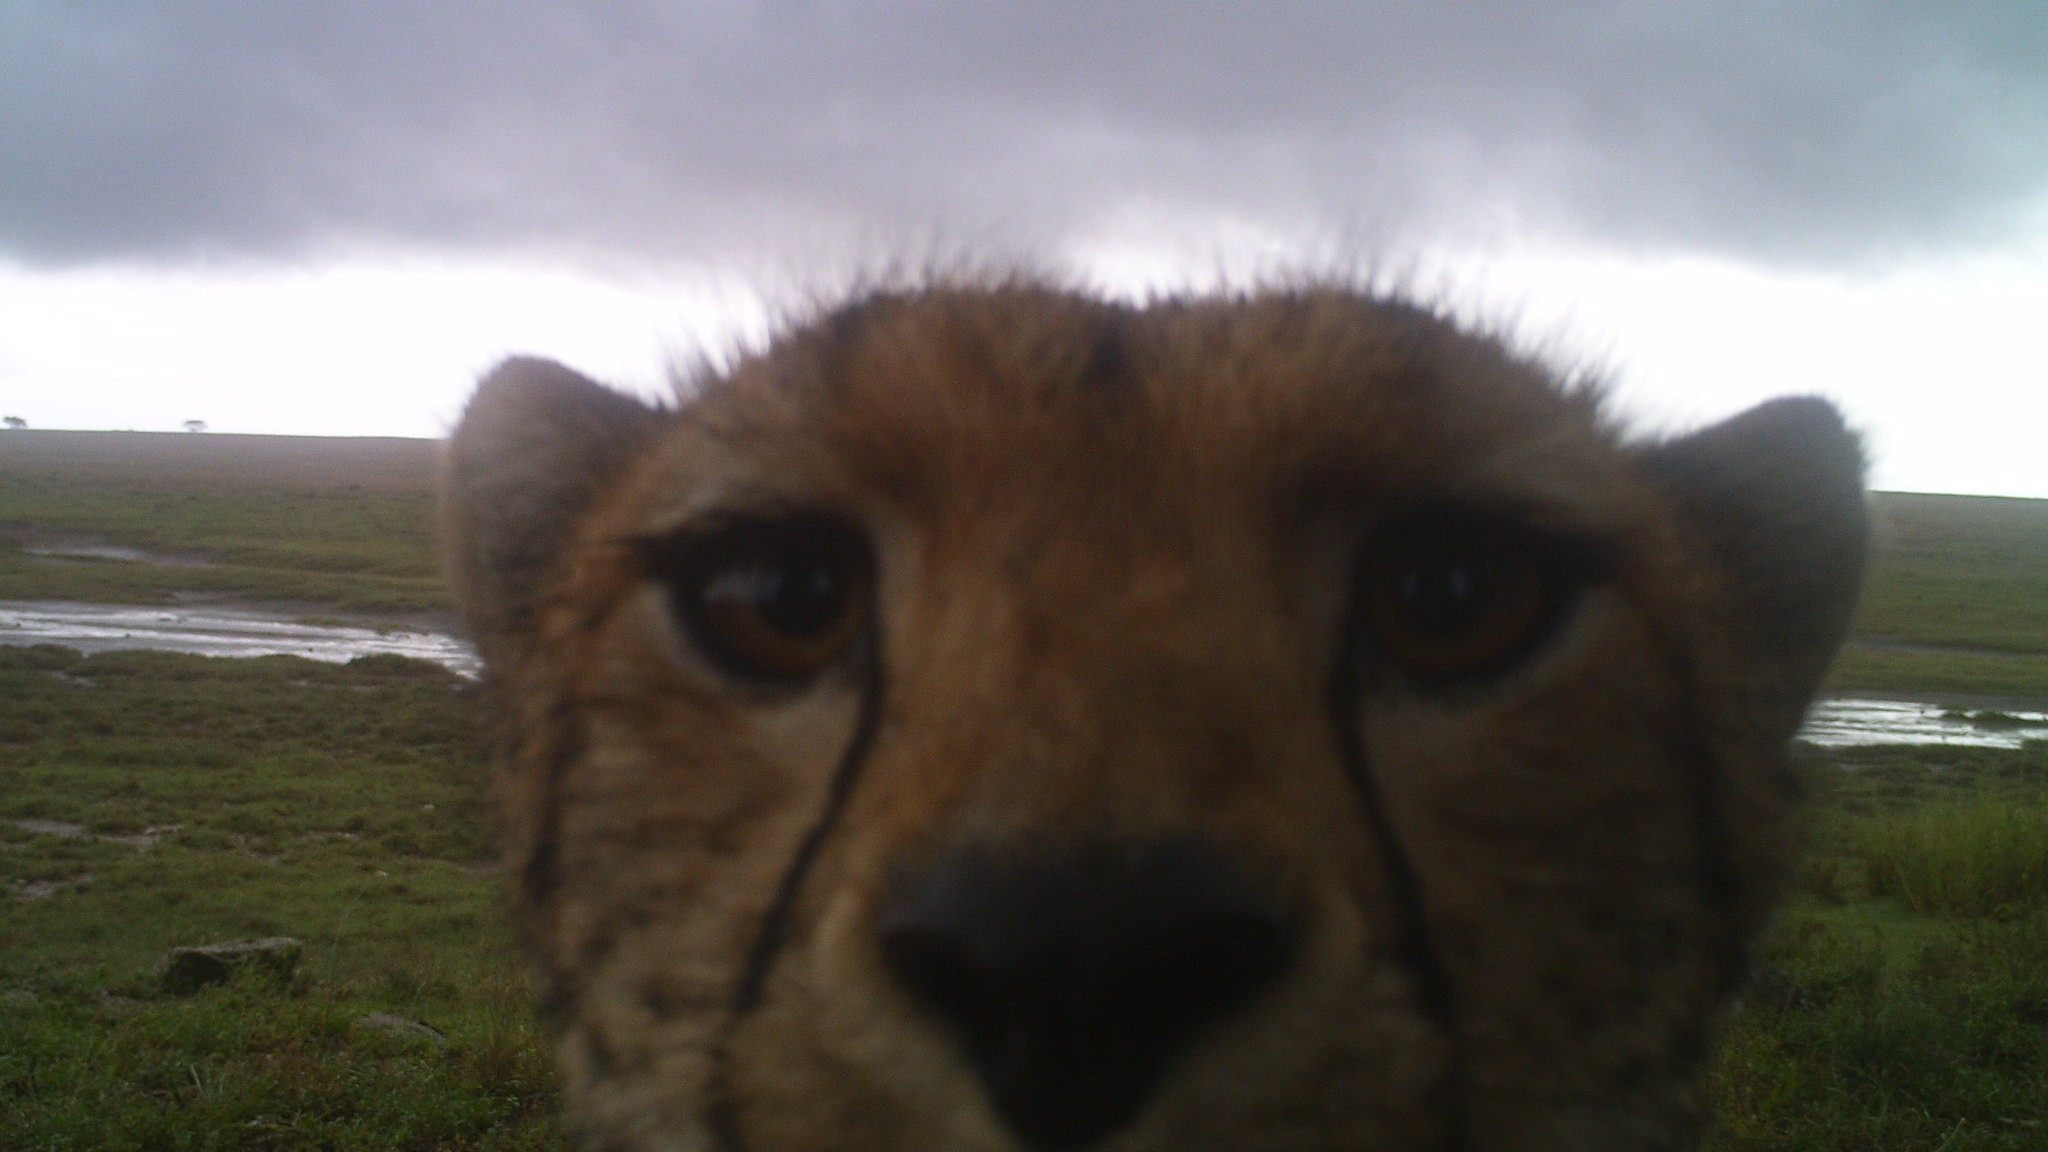 Ecologists Are Using Over 300,000 Animal Selfies to Study the Serengeti